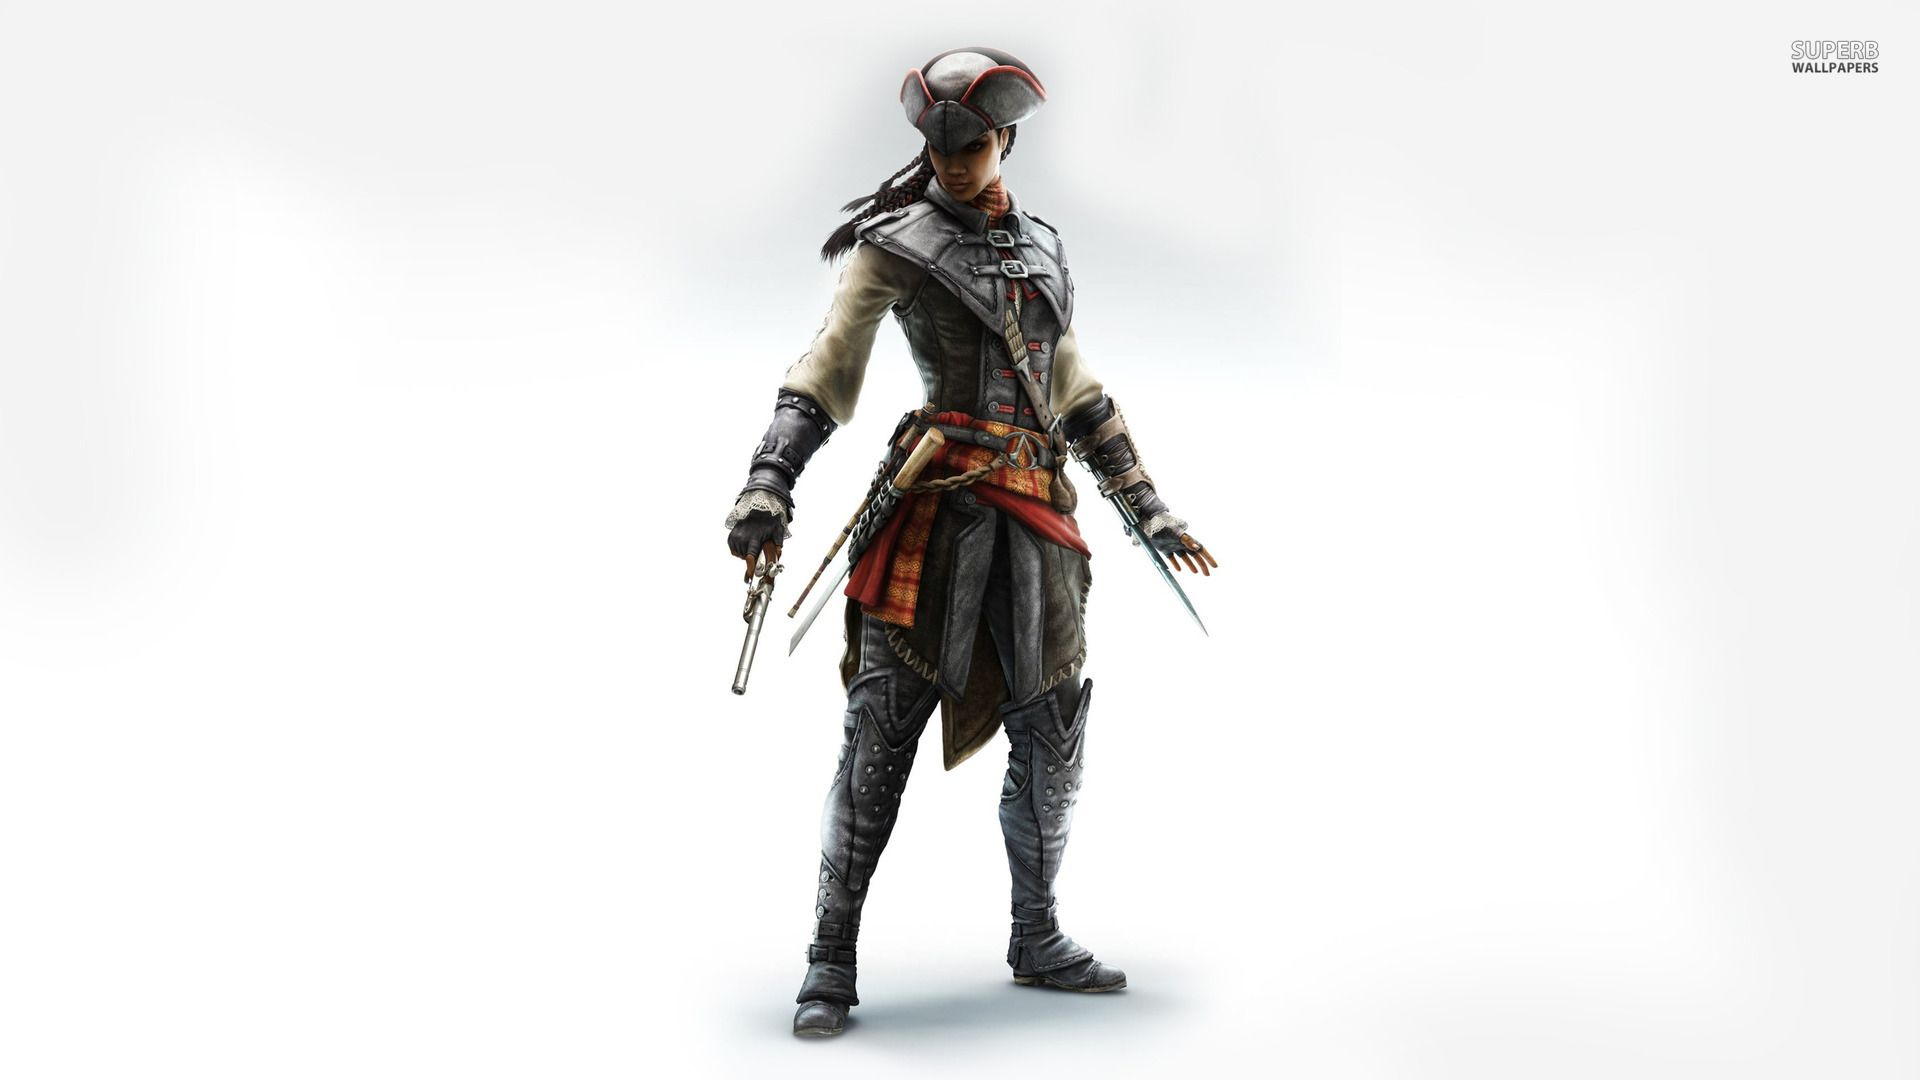 Must see Wallpaper Horse Assassin'S Creed - b1f2a6d41edd817ace923376ebf9be7a  Graphic_289864.jpg